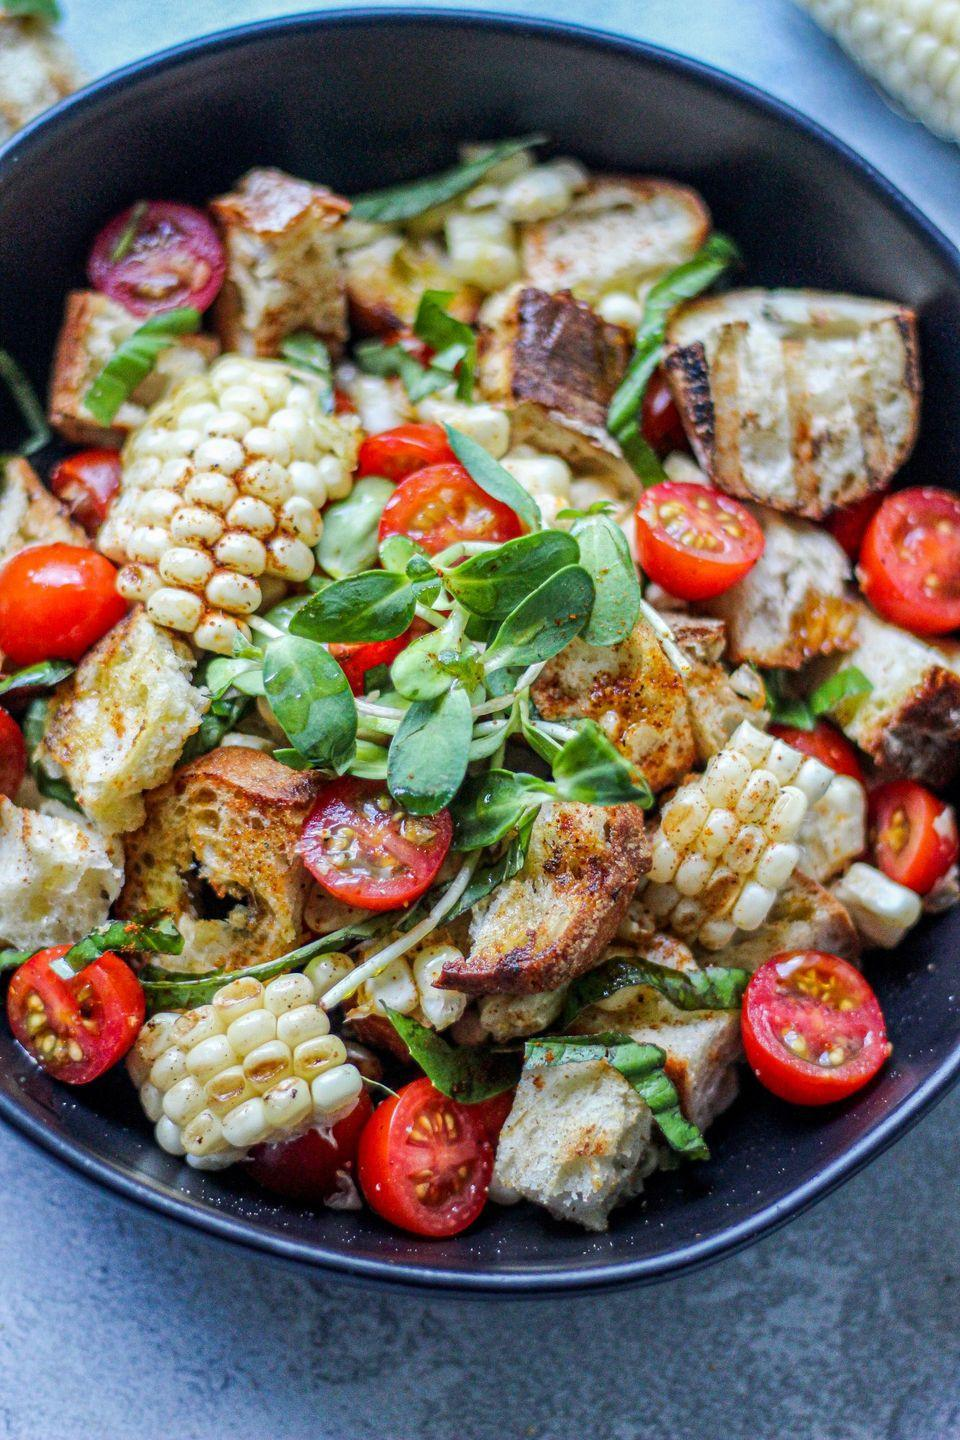 "<p>For a summery brunch, try this Eritrean-inspired panzanella salad with fresh corn and torn pieces of a baguette.</p><p><strong>Get the recipe at <a href=""https://sweetandsorrel.com/corn-fitfit-salad/"" rel=""nofollow noopener"" target=""_blank"" data-ylk=""slk:Sweet and Sorrel"" class=""link rapid-noclick-resp"">Sweet and Sorrel</a>. </strong></p><p><strong><a class=""link rapid-noclick-resp"" href=""https://go.redirectingat.com?id=74968X1596630&url=https%3A%2F%2Fwww.thespicehouse.com%2Fproducts%2Fberbere&sref=https%3A%2F%2Fwww.thepioneerwoman.com%2Ffood-cooking%2Fmeals-menus%2Fg35993911%2Fbest-corn-recipes%2F"" rel=""nofollow noopener"" target=""_blank"" data-ylk=""slk:SHOP BERBERE"">SHOP BERBERE</a><br></strong></p>"